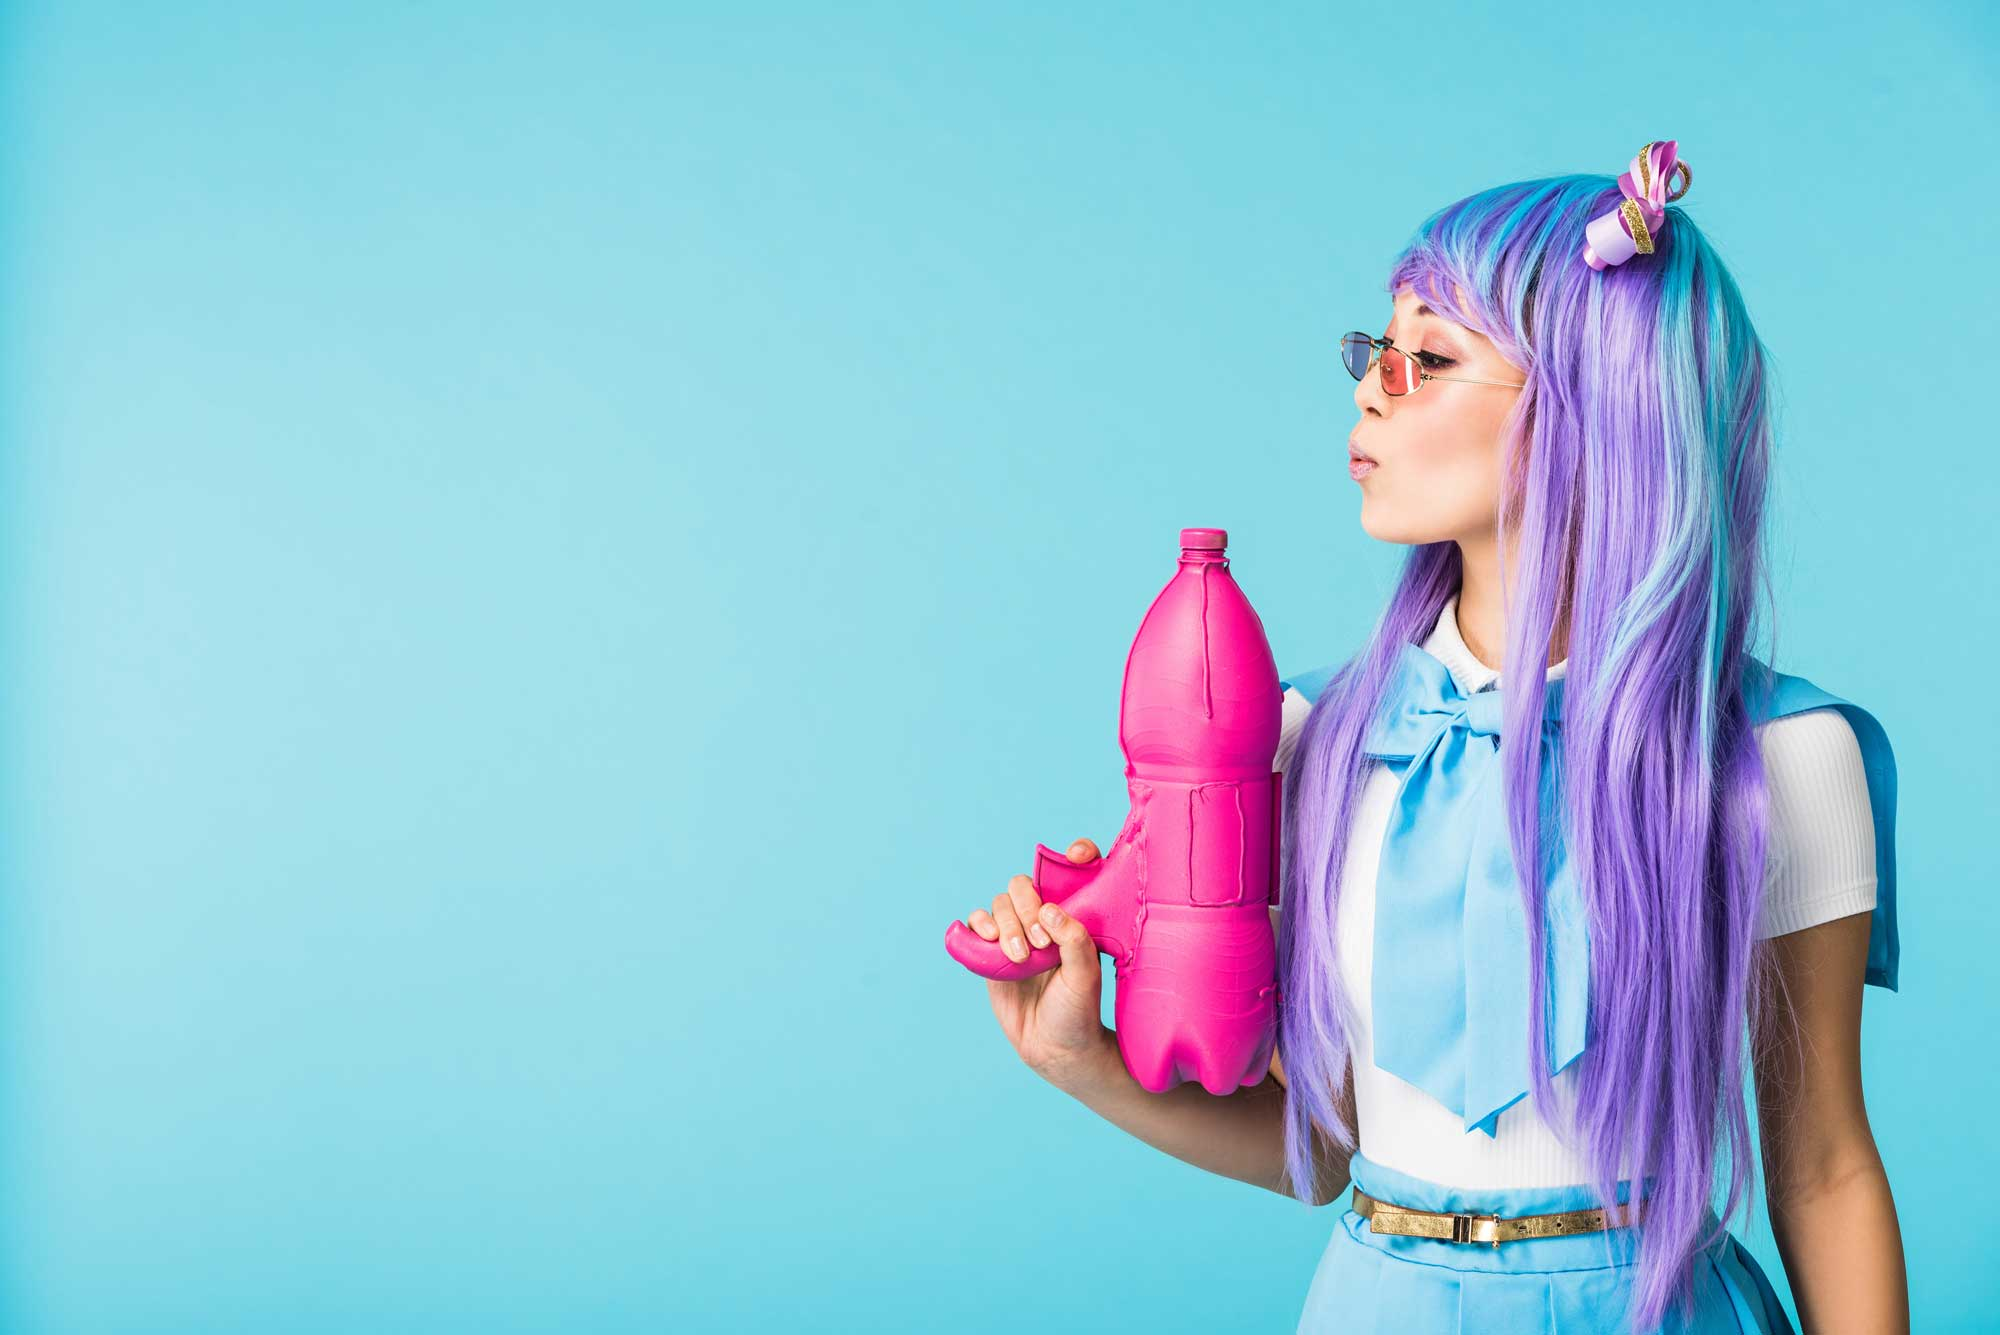 8 Important Tips for Your Cosplay Debut